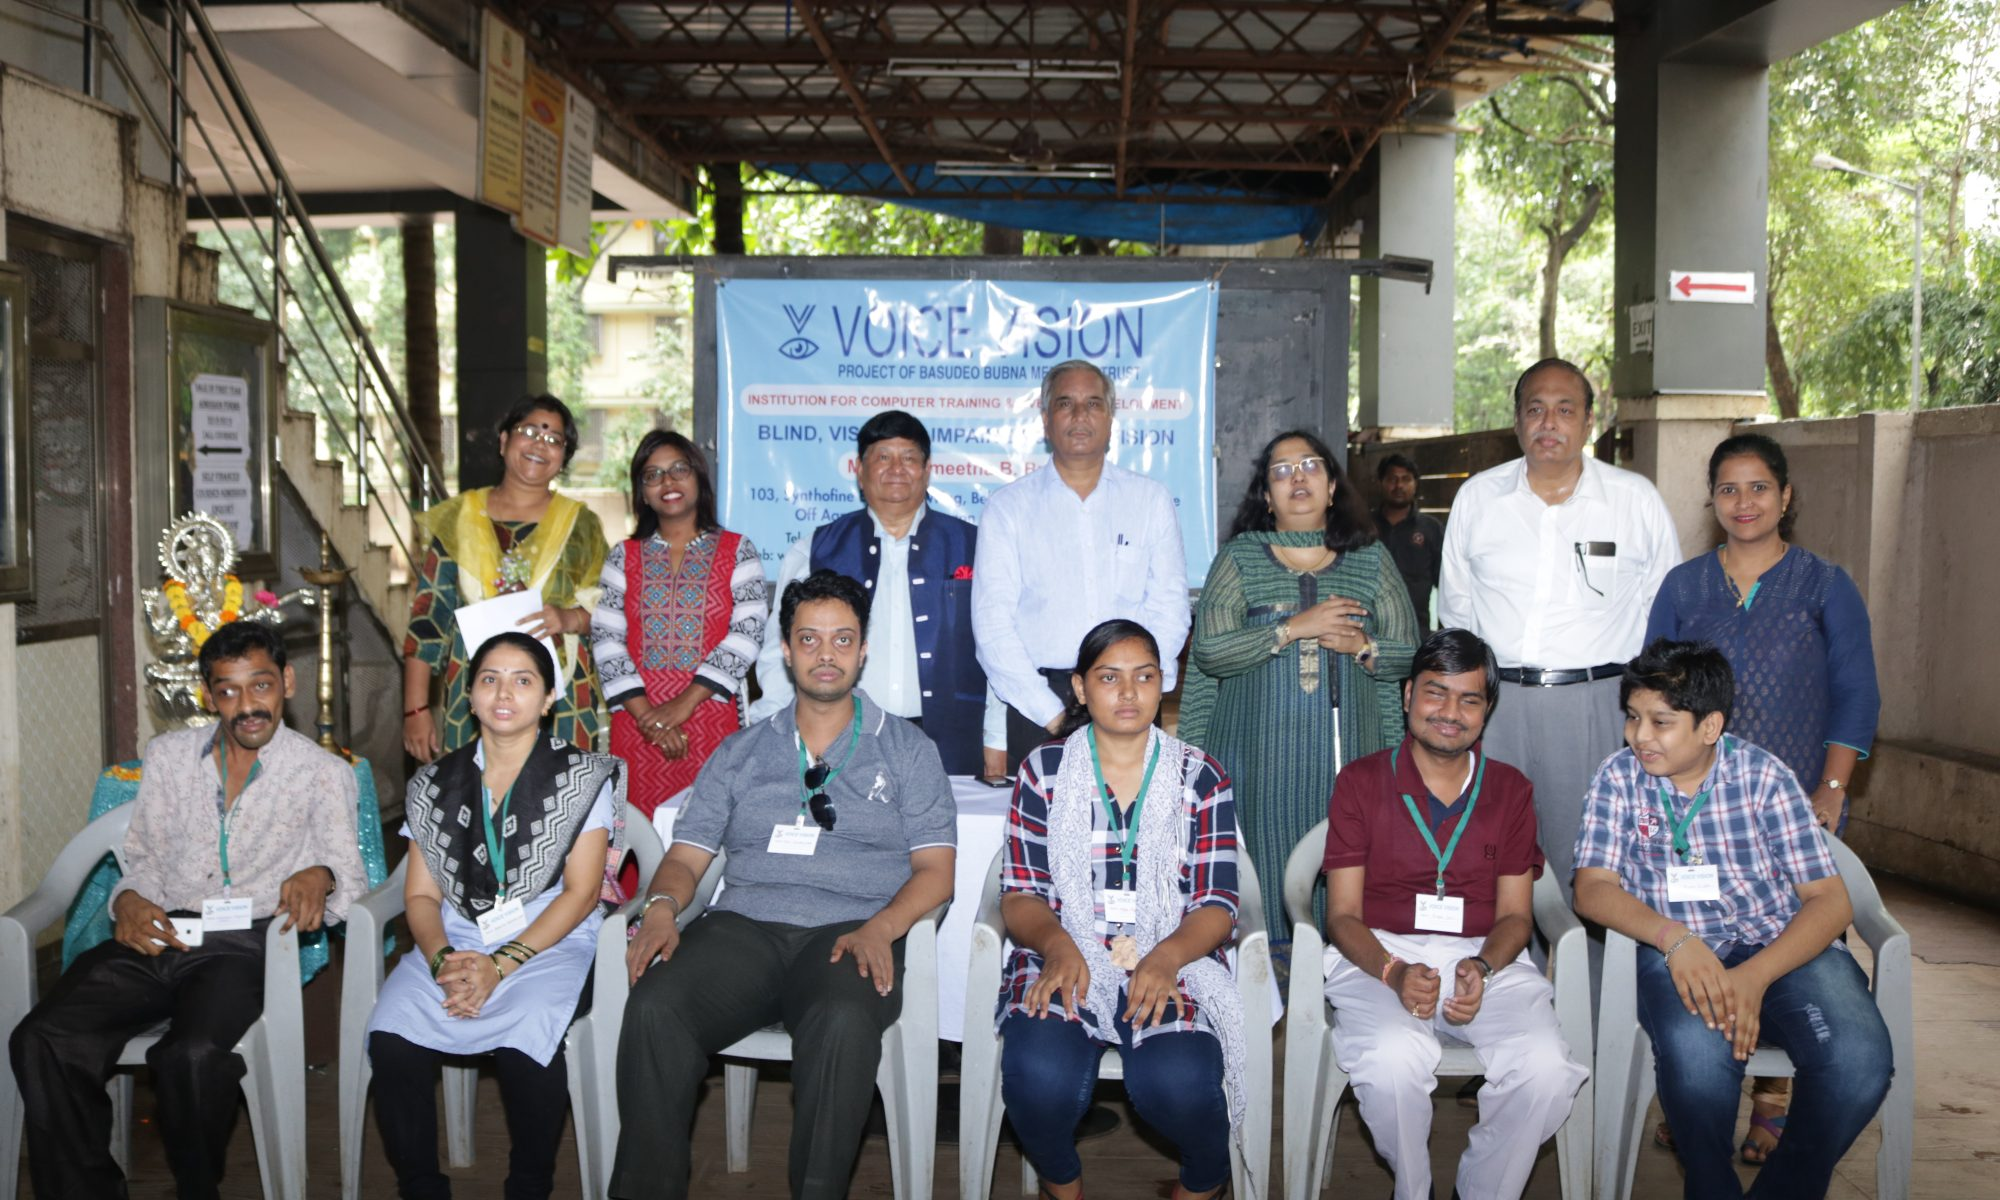 Its a group photo with Chief Guest, Doctors, College Principal, Teachers, Voice Vision Founder, Doctors from LifeSupporters and participants along with volunteers are standing.